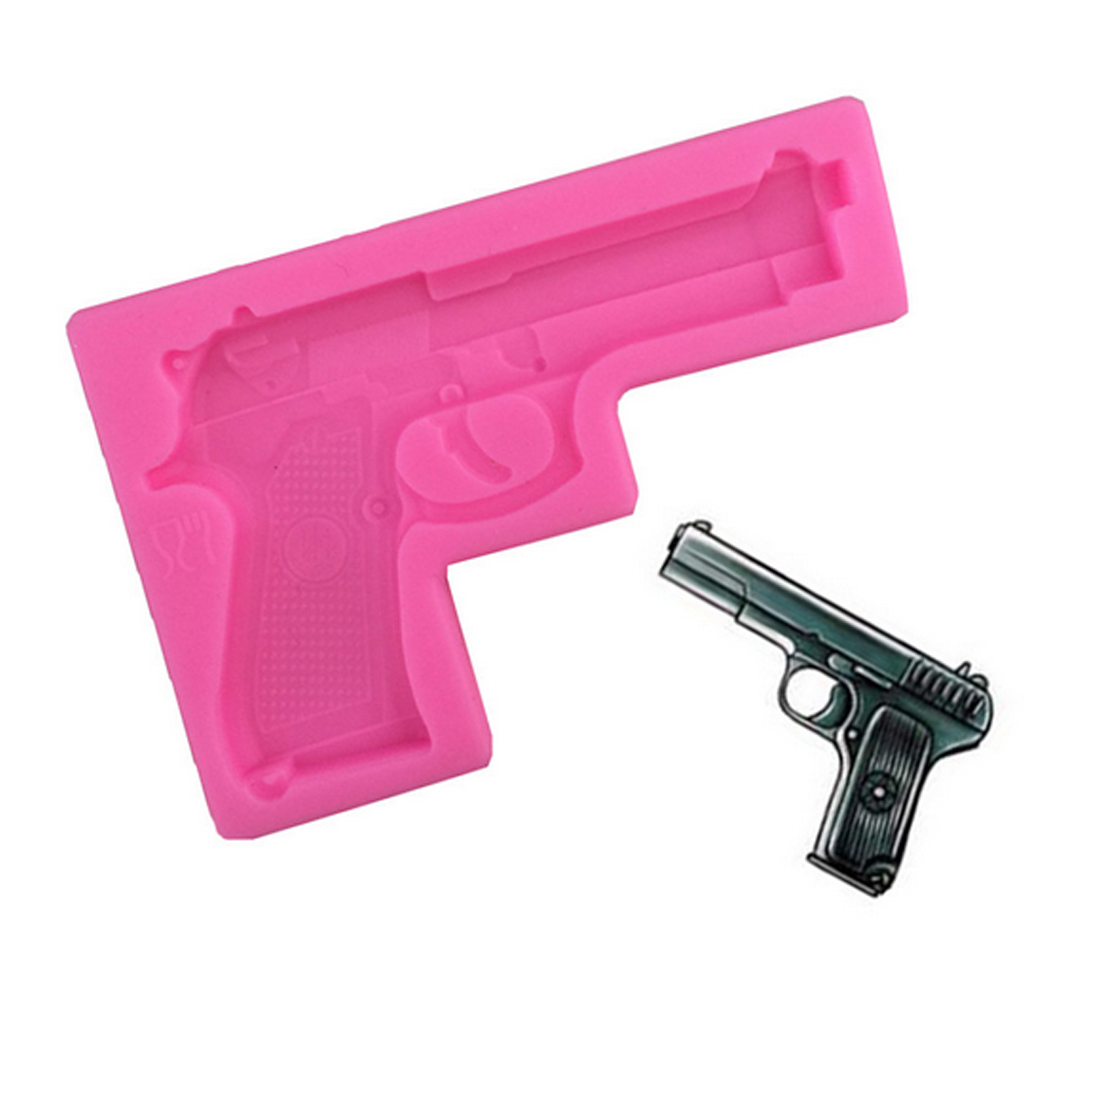 Hot 1PCS Gun Toy Shape Silicone Cake Molds Bakeware Decorating Cartoon cakes mold DIY Soap Molds for kids